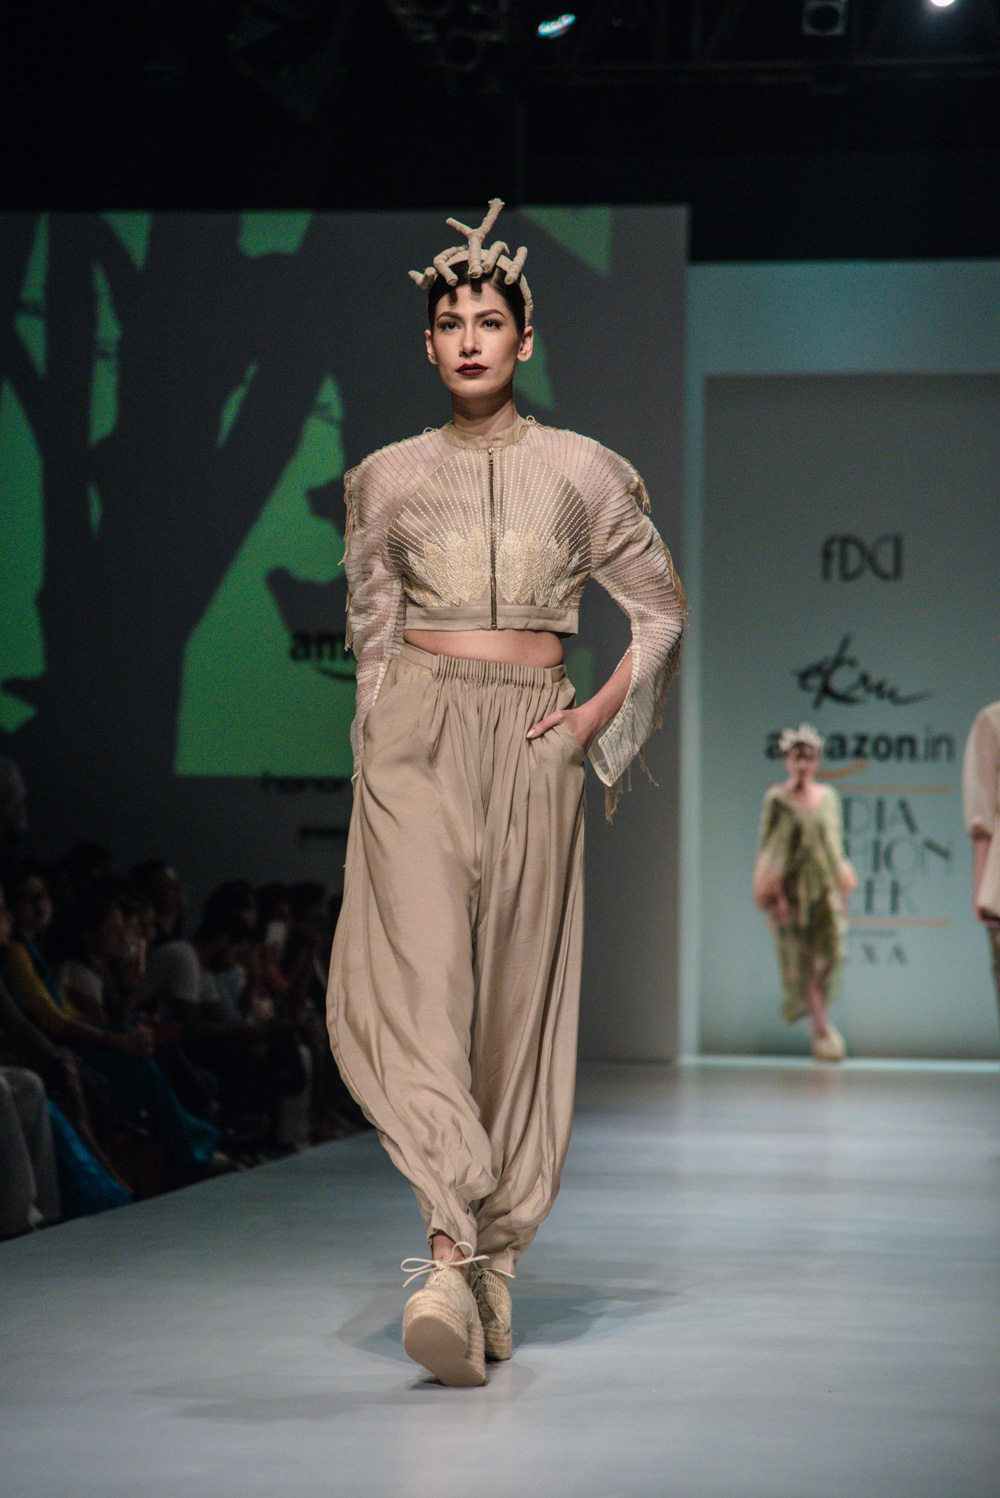 Ekru by Ektaa FDCI Amazon India Fashion Week Spring Summer 2018 Look 10